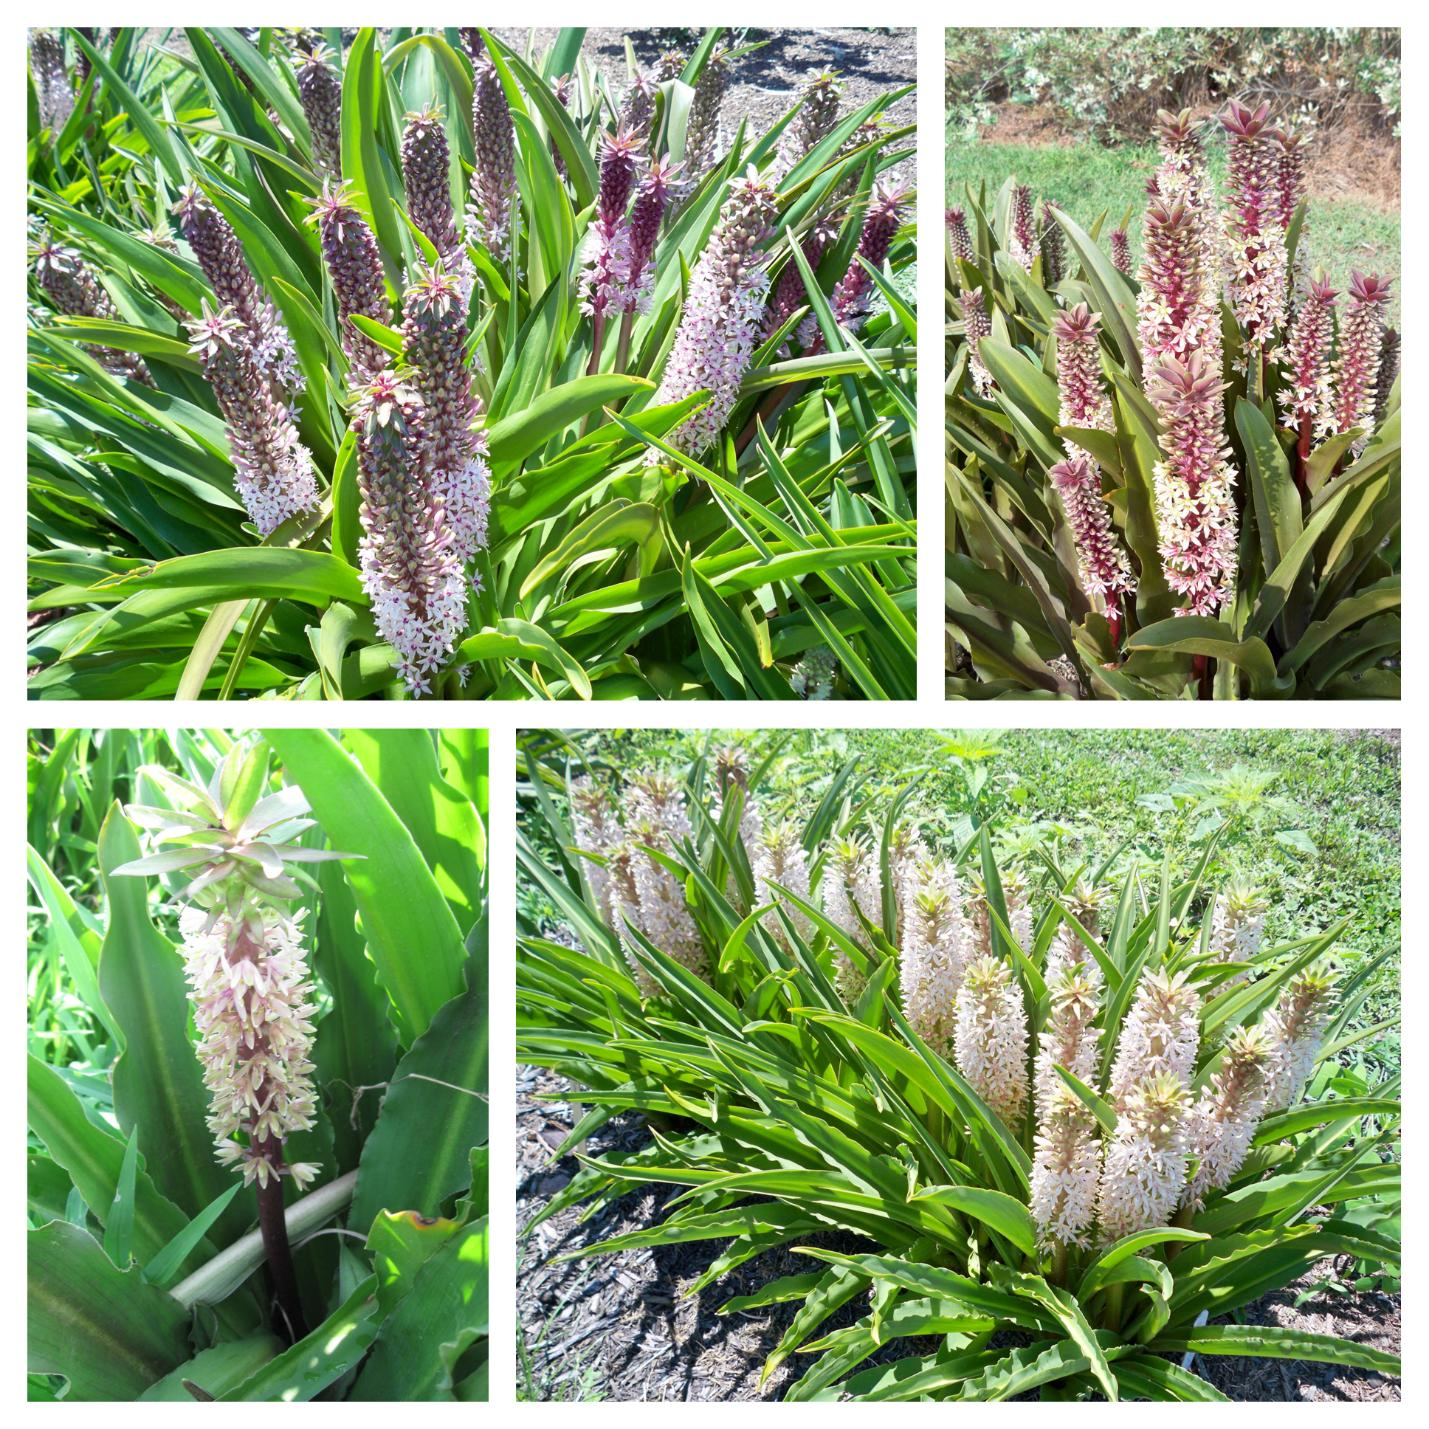 Optimal Conditions For Forcing Cut Pineapple Lily